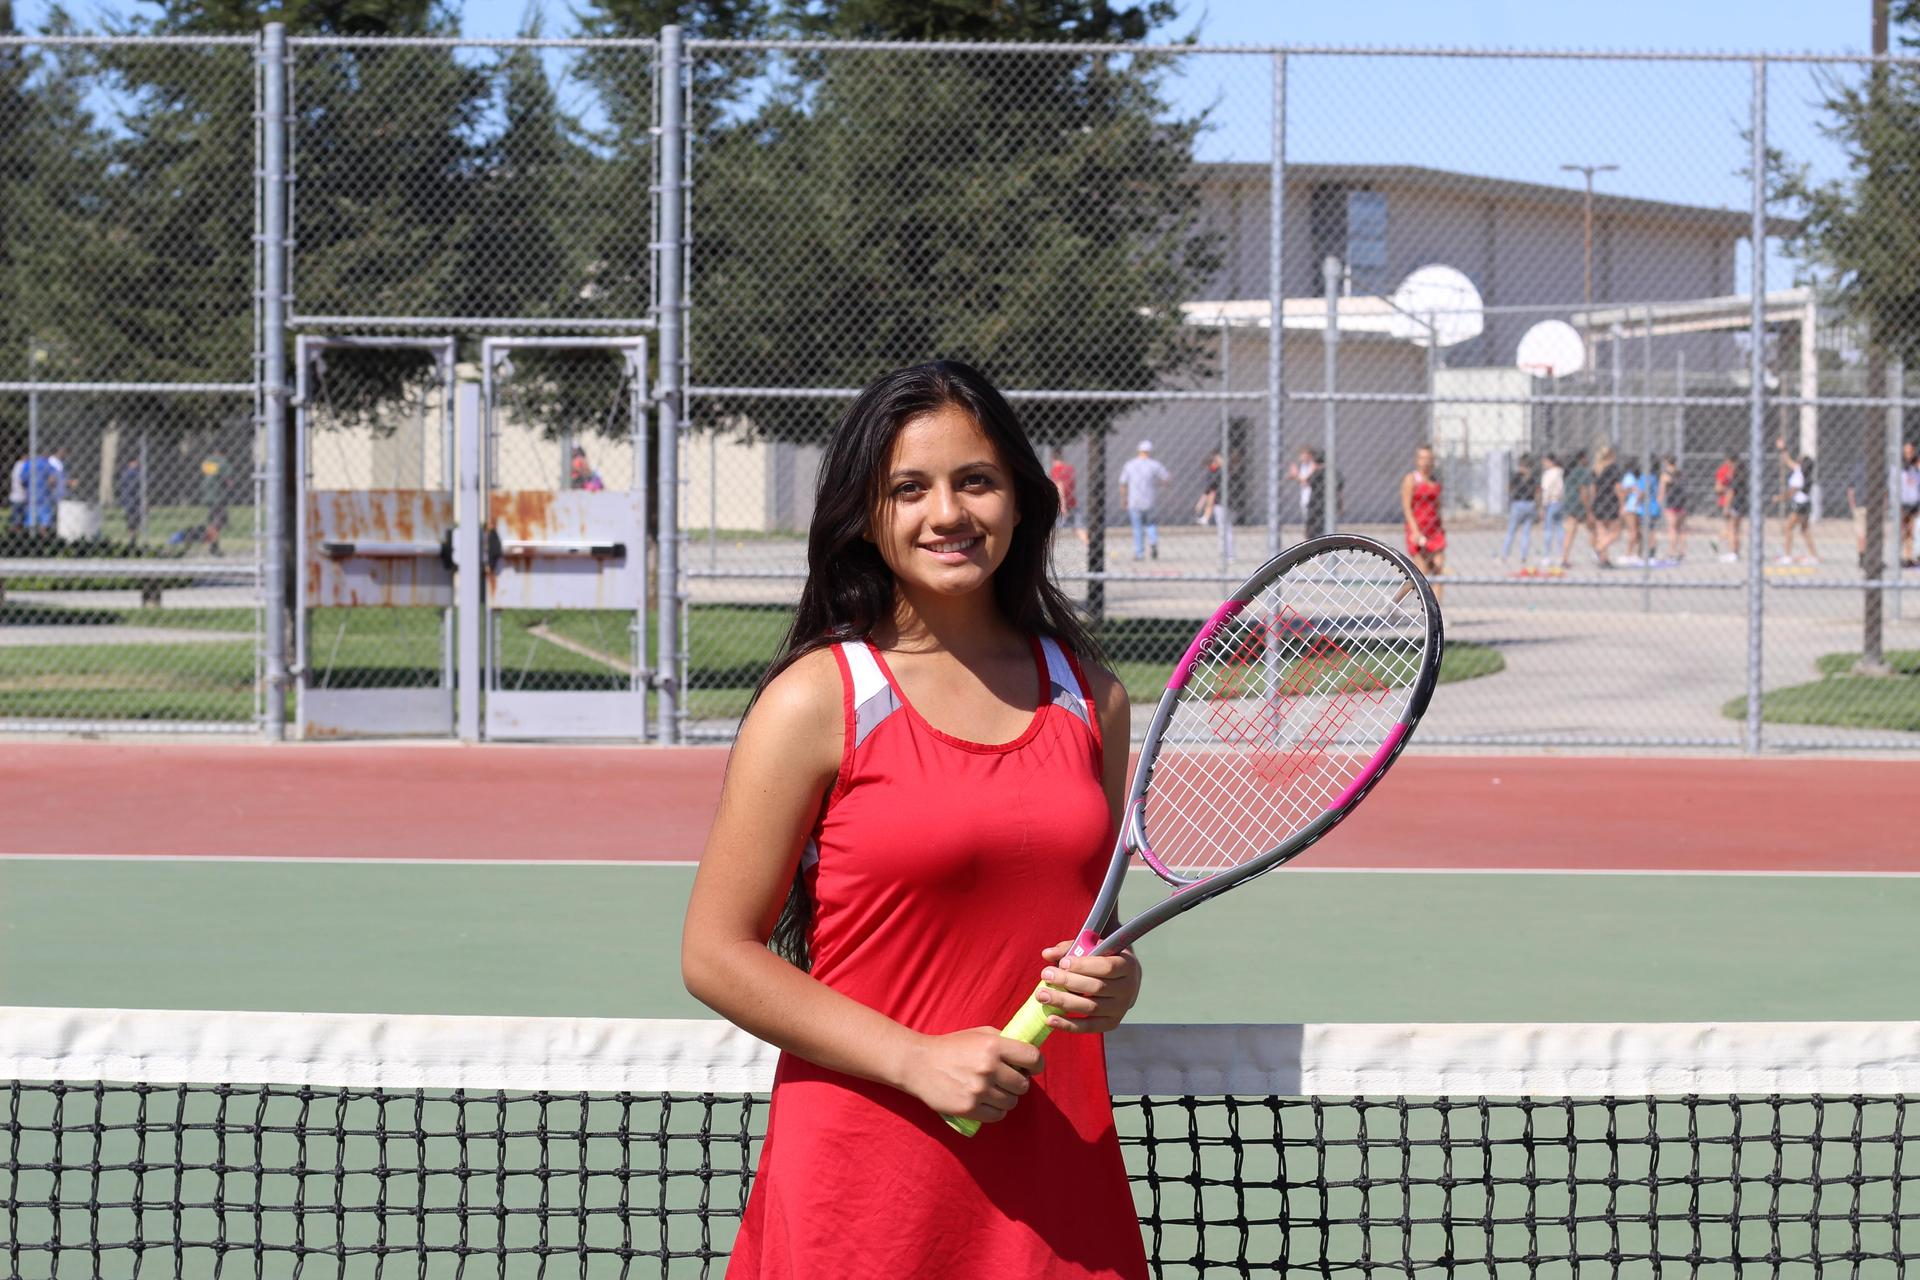 Senior tennis player Maria Mendonca.